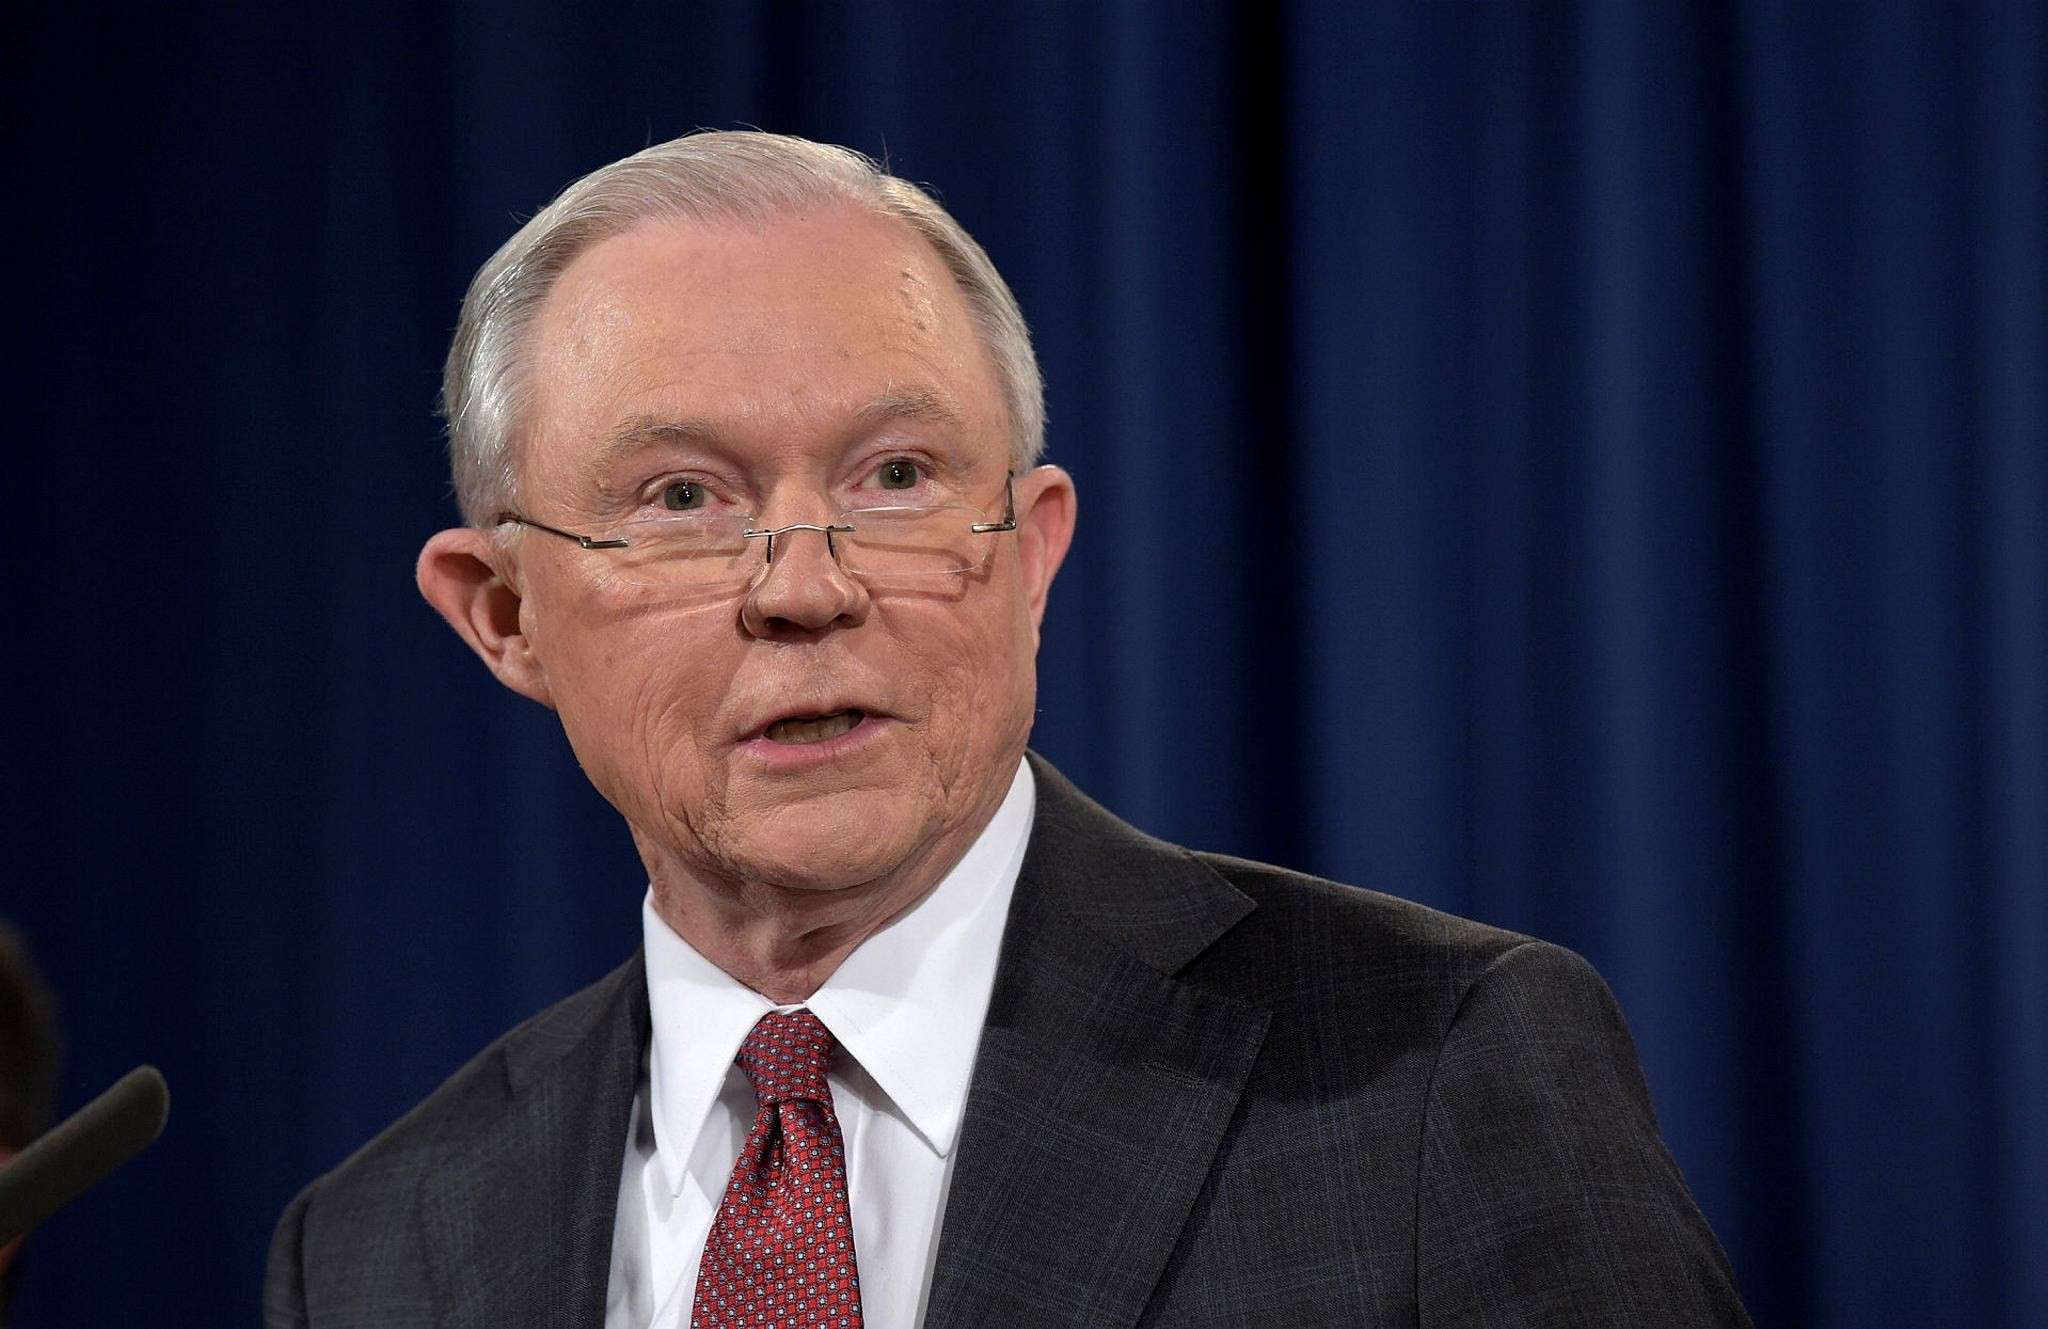 Attorney General Jeff Sessions speaks at the Justice Department in Washington, Thursday, March 2, 2017. (AP Photo)